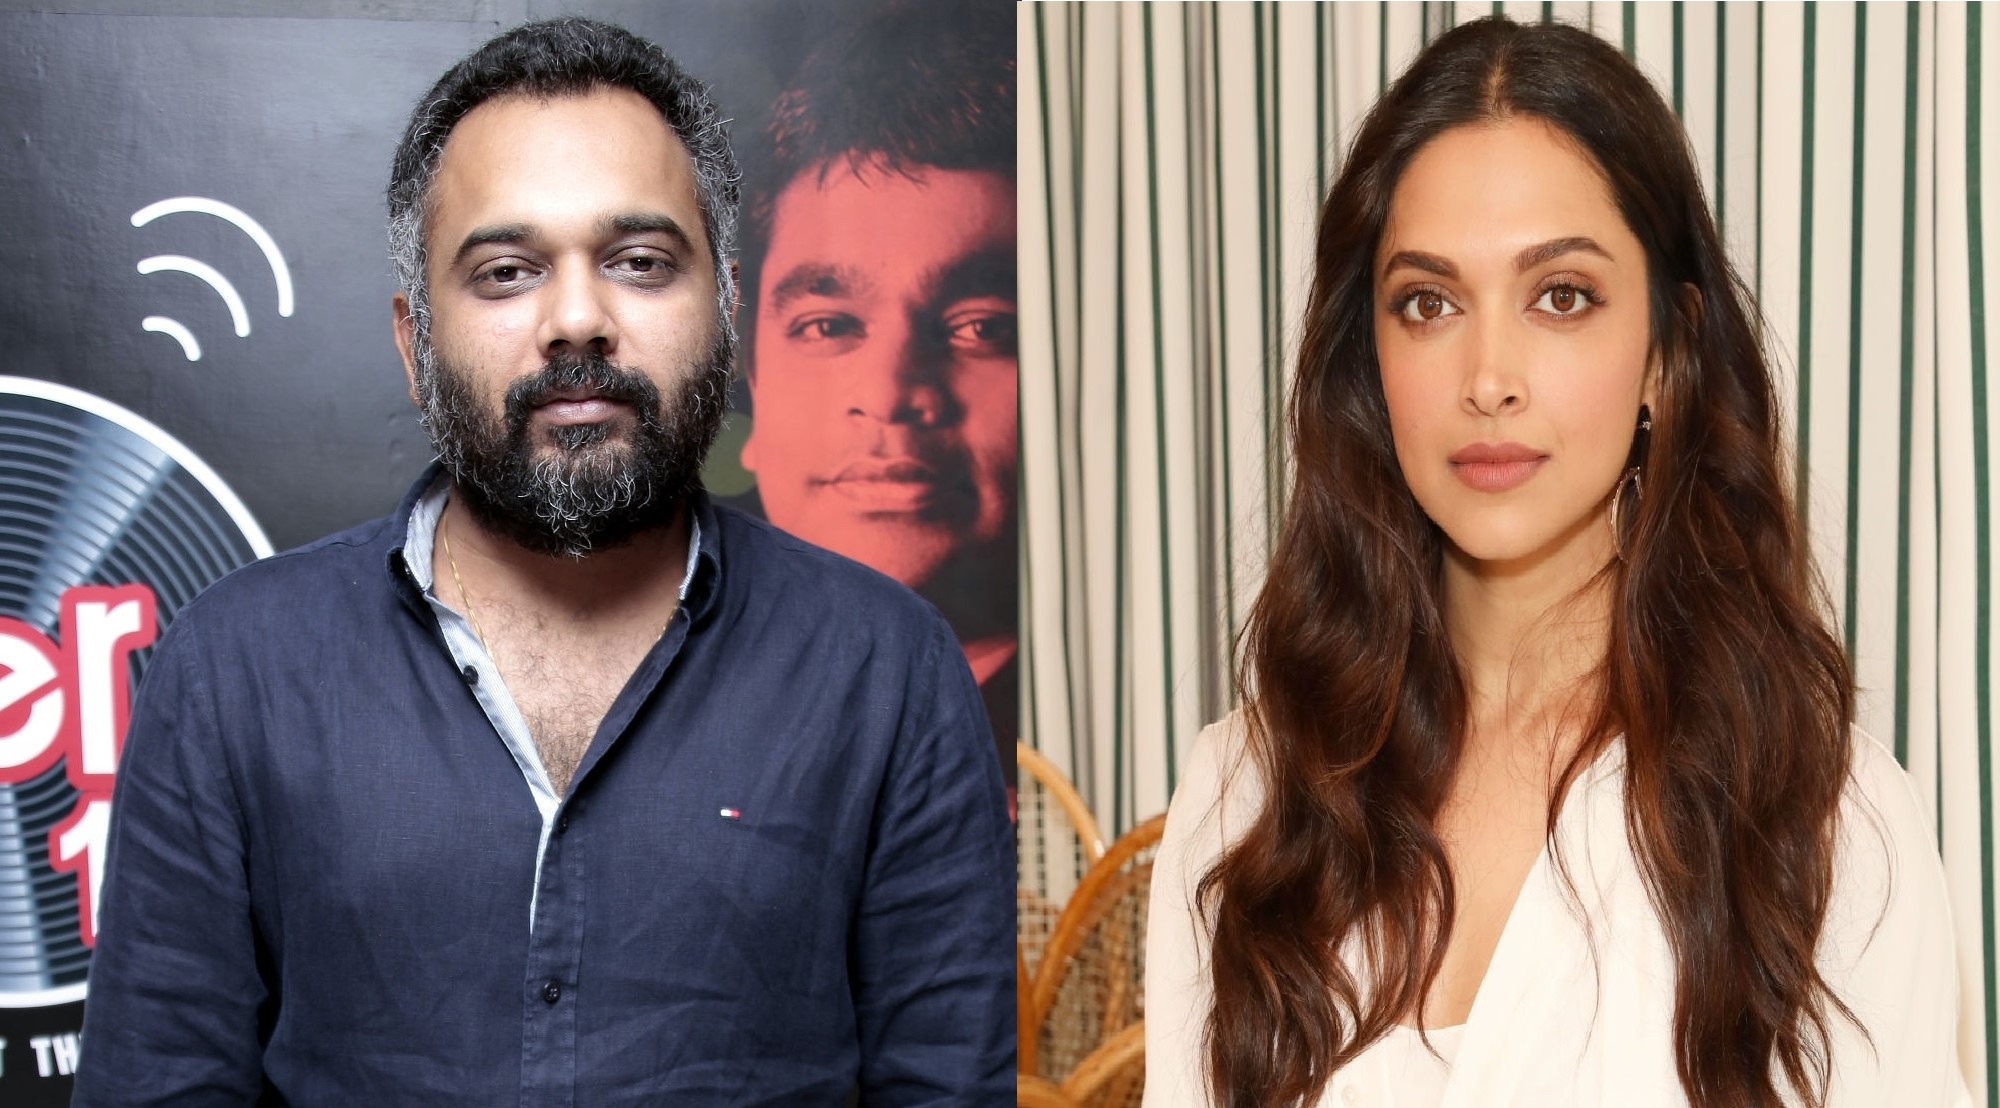 Deepika Padukone faces criticism after meeting with Luv Ranjan